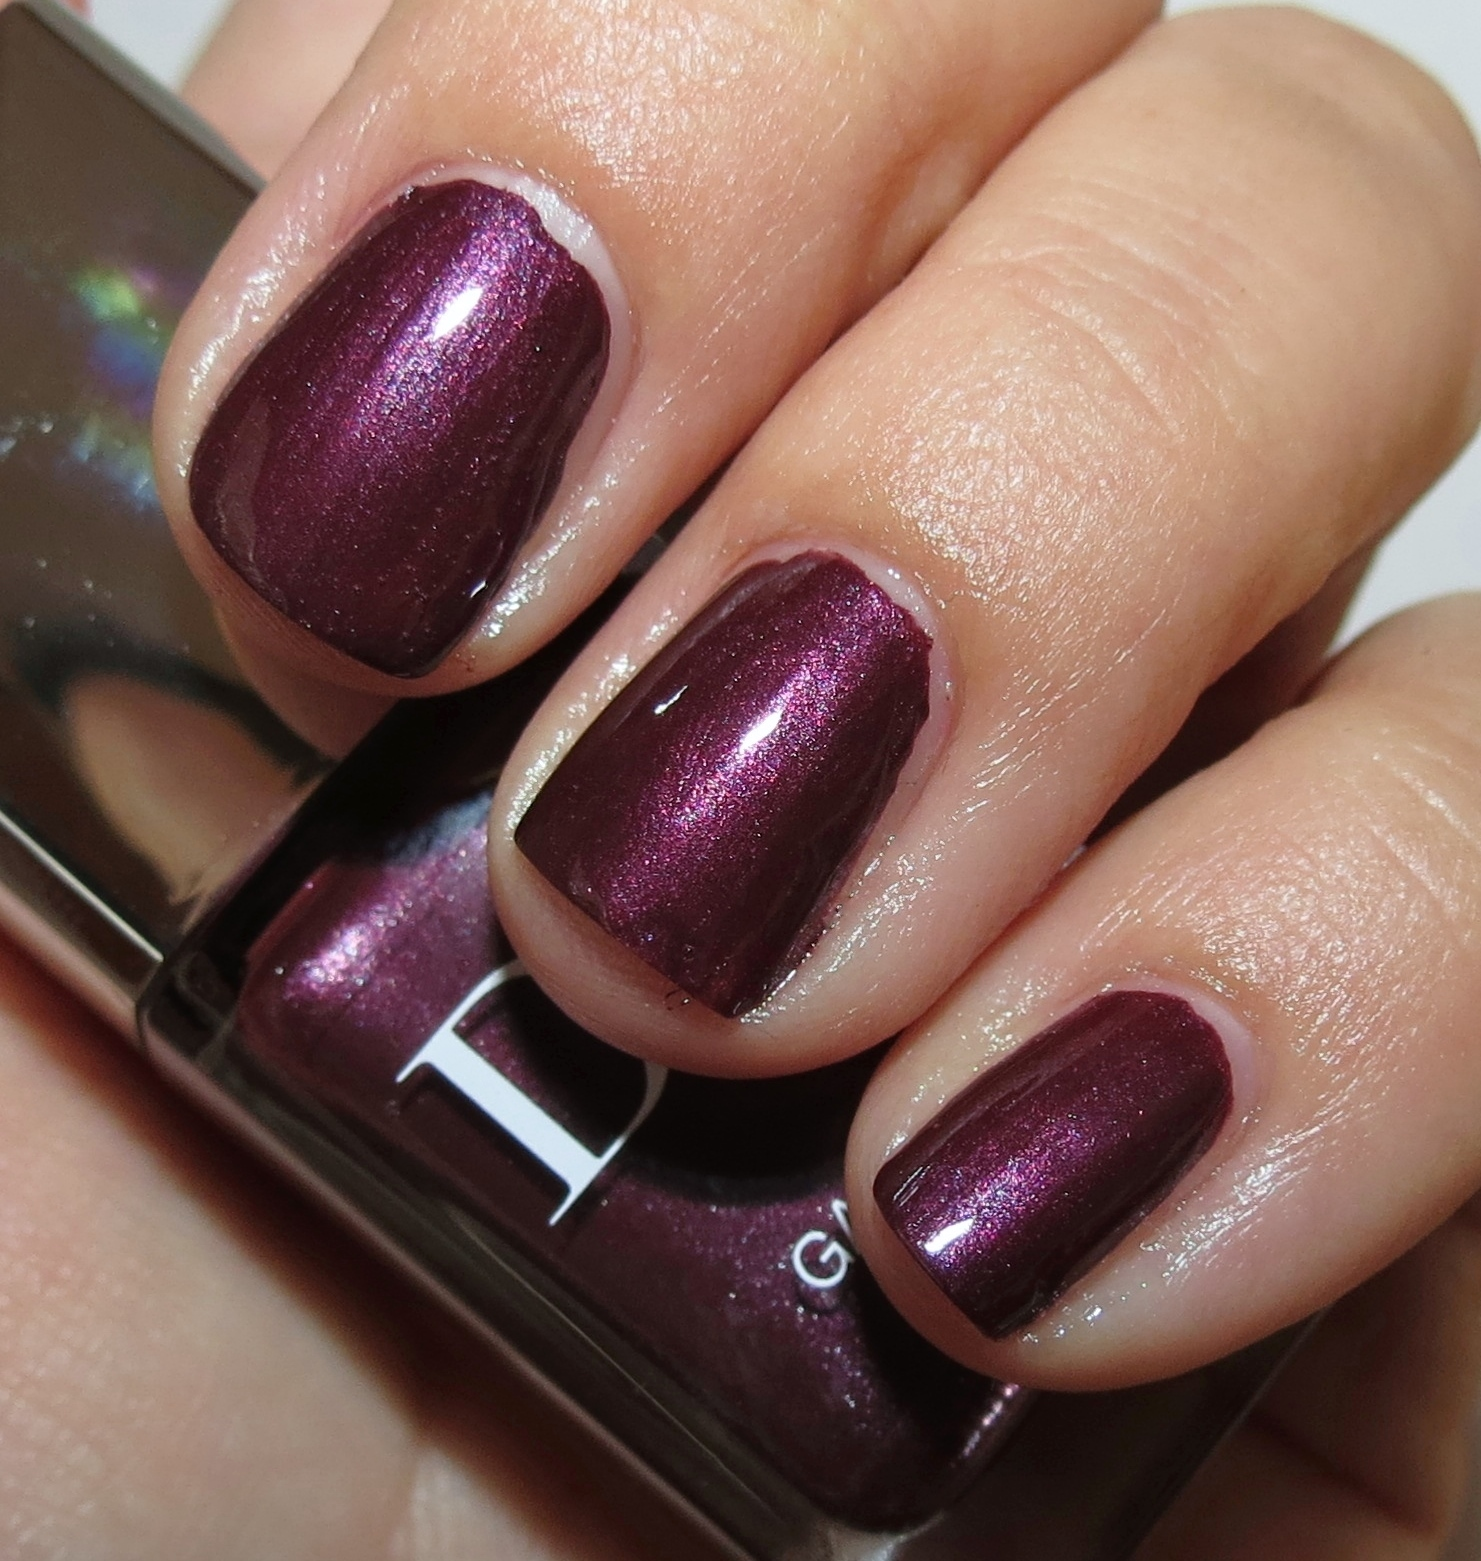 Dior GALAXIE 992 Vernis Nail Polish Swatches & Review ...